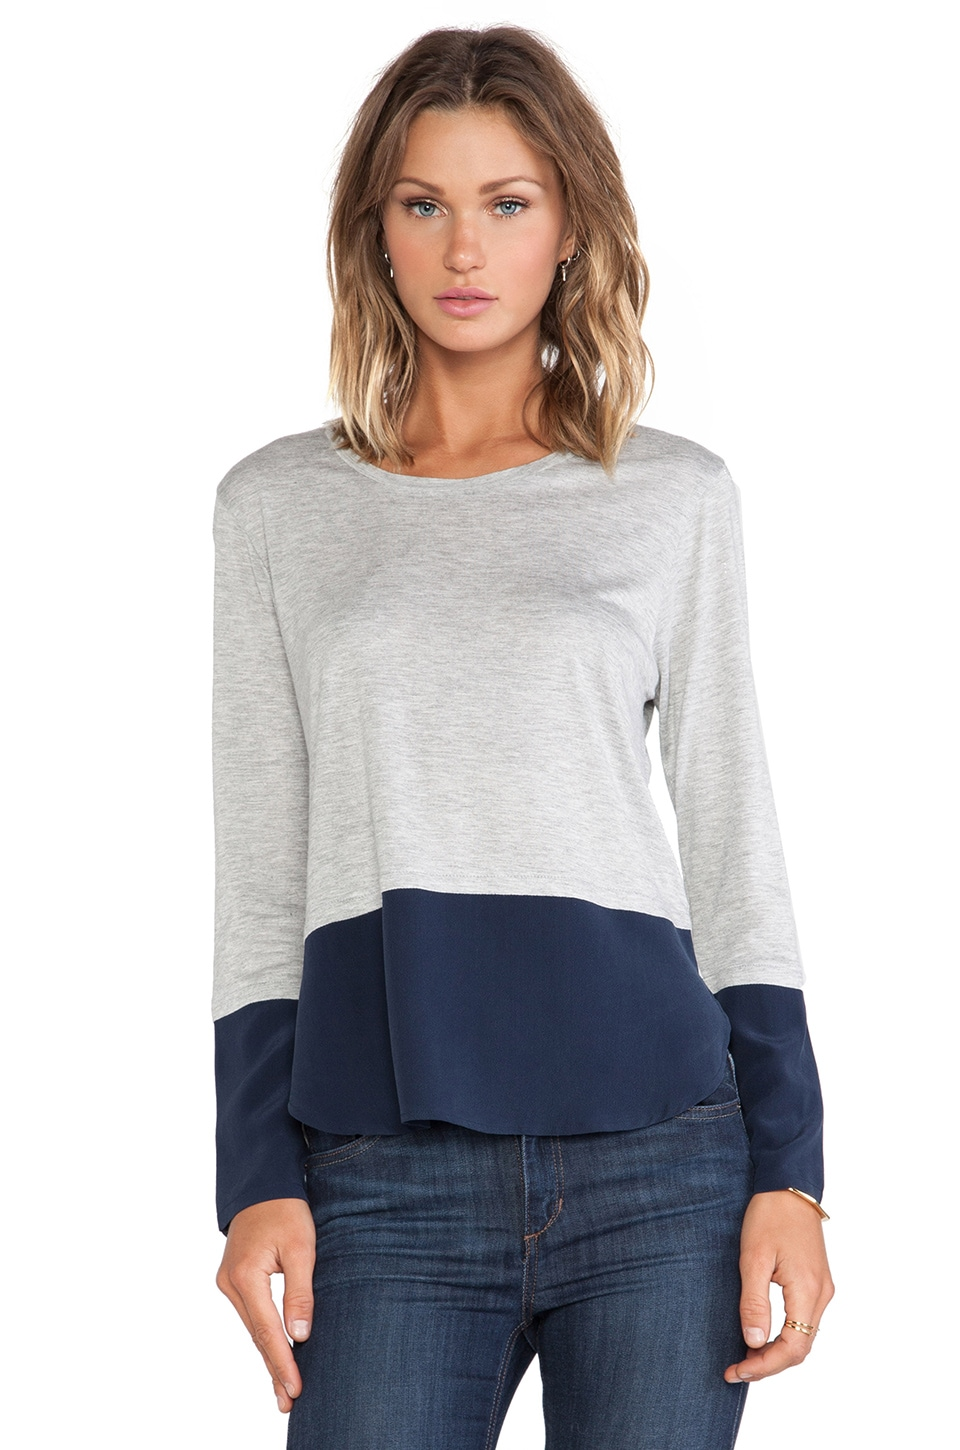 Feel the Piece Aline Top in Navy & Heather Grey